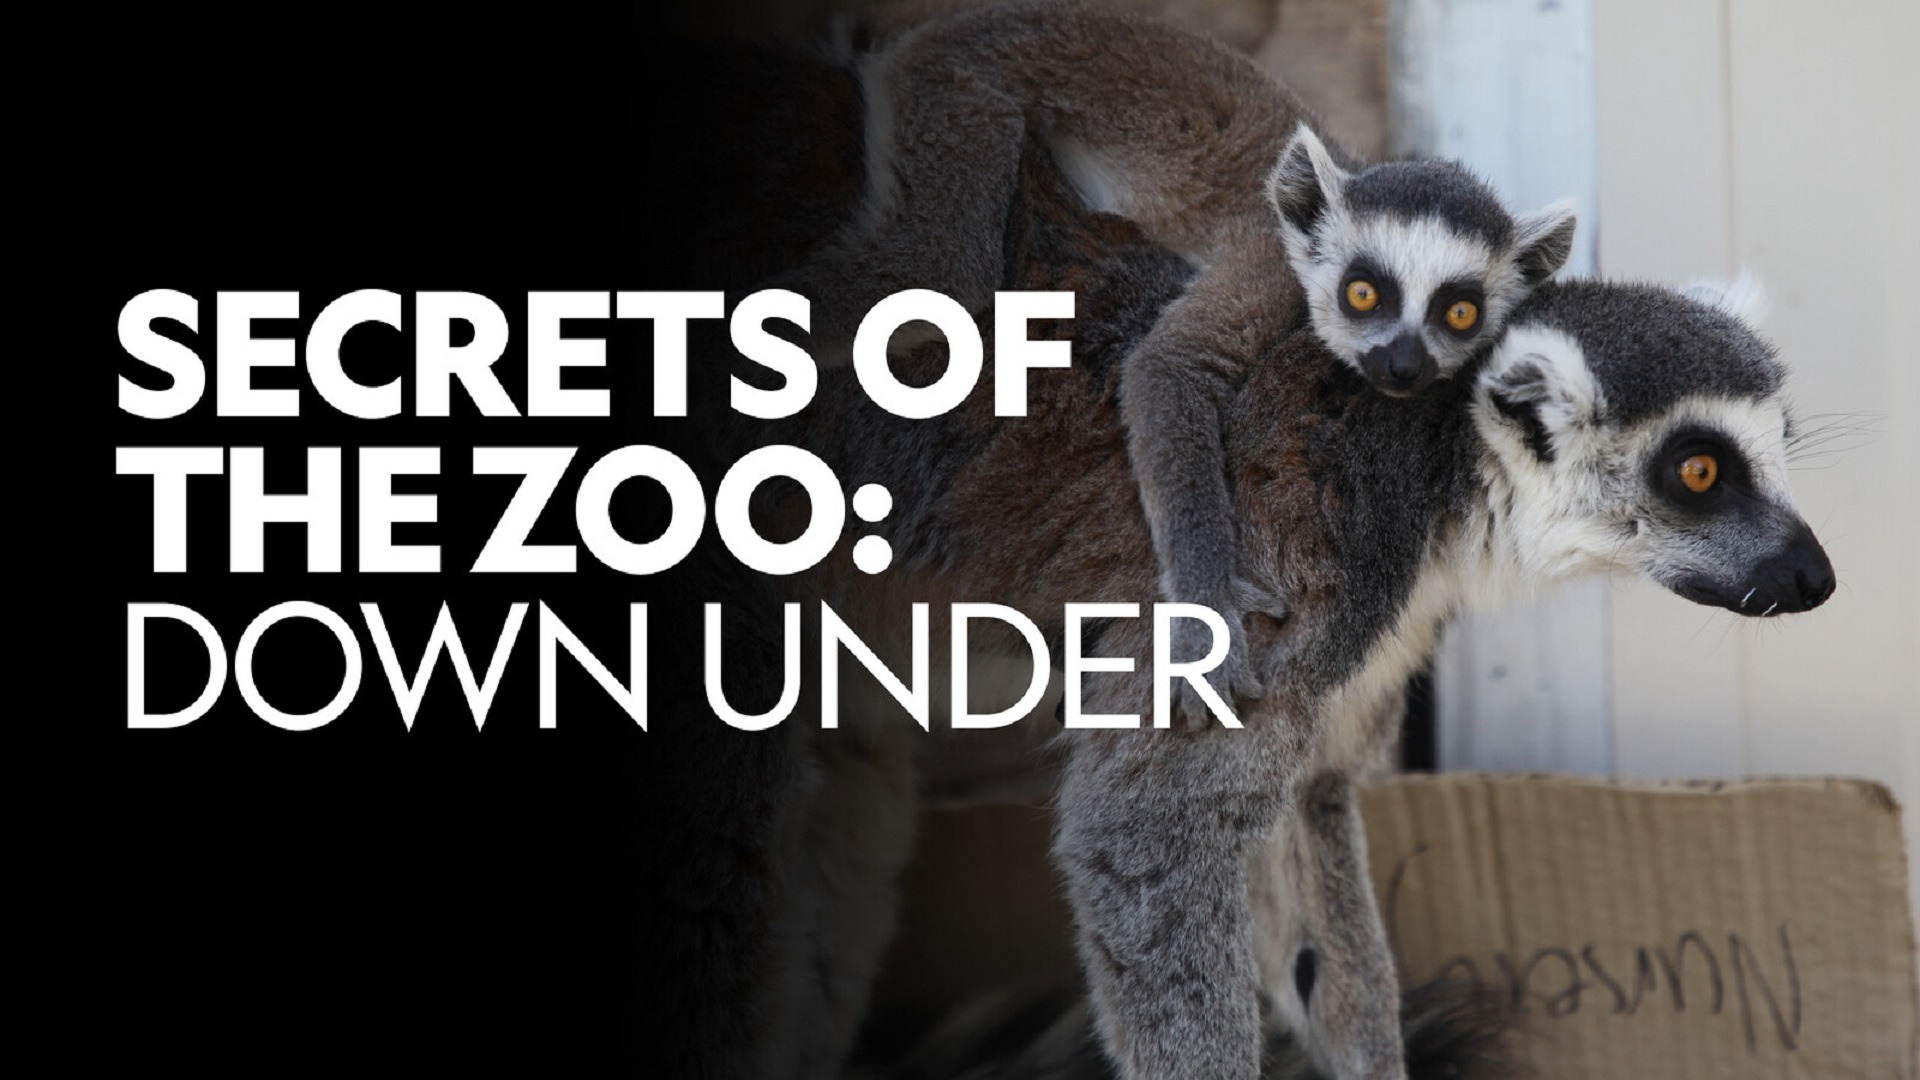 Show Secrets of the Zoo: Down Under